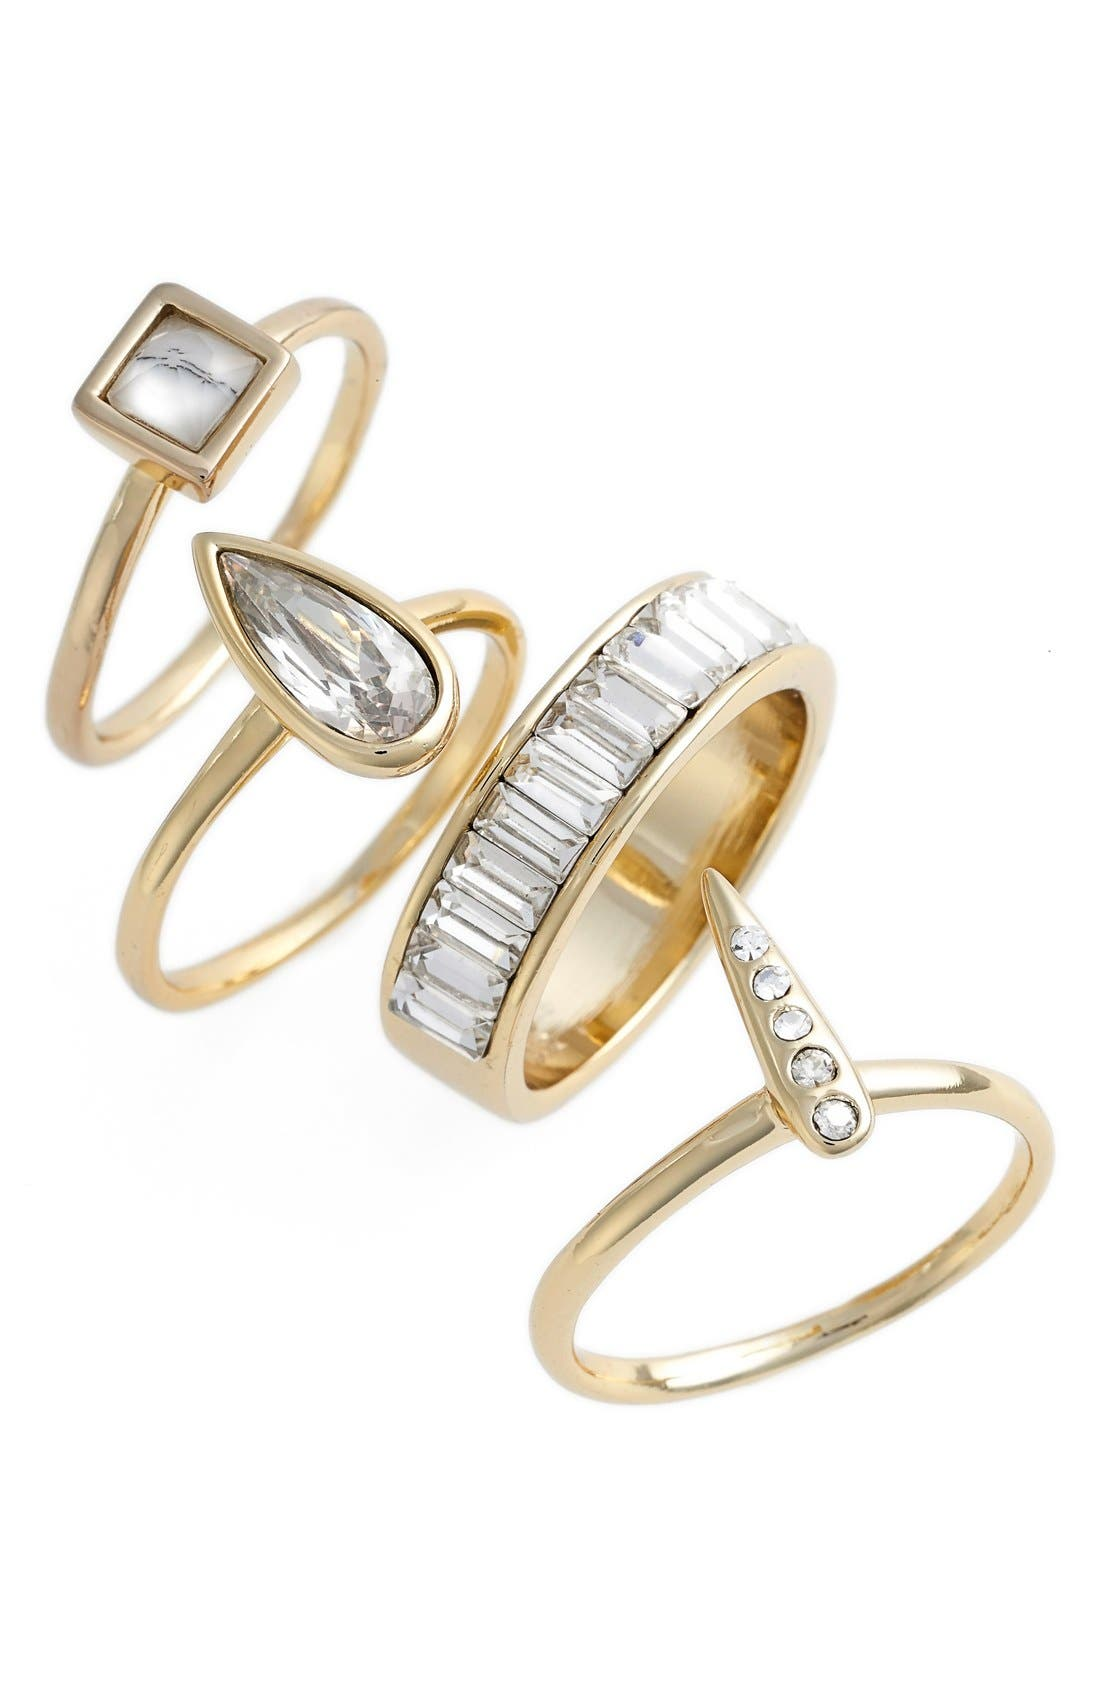 Main Image - Alexis Bittar Crystal Stacking Rings (Set of 4)